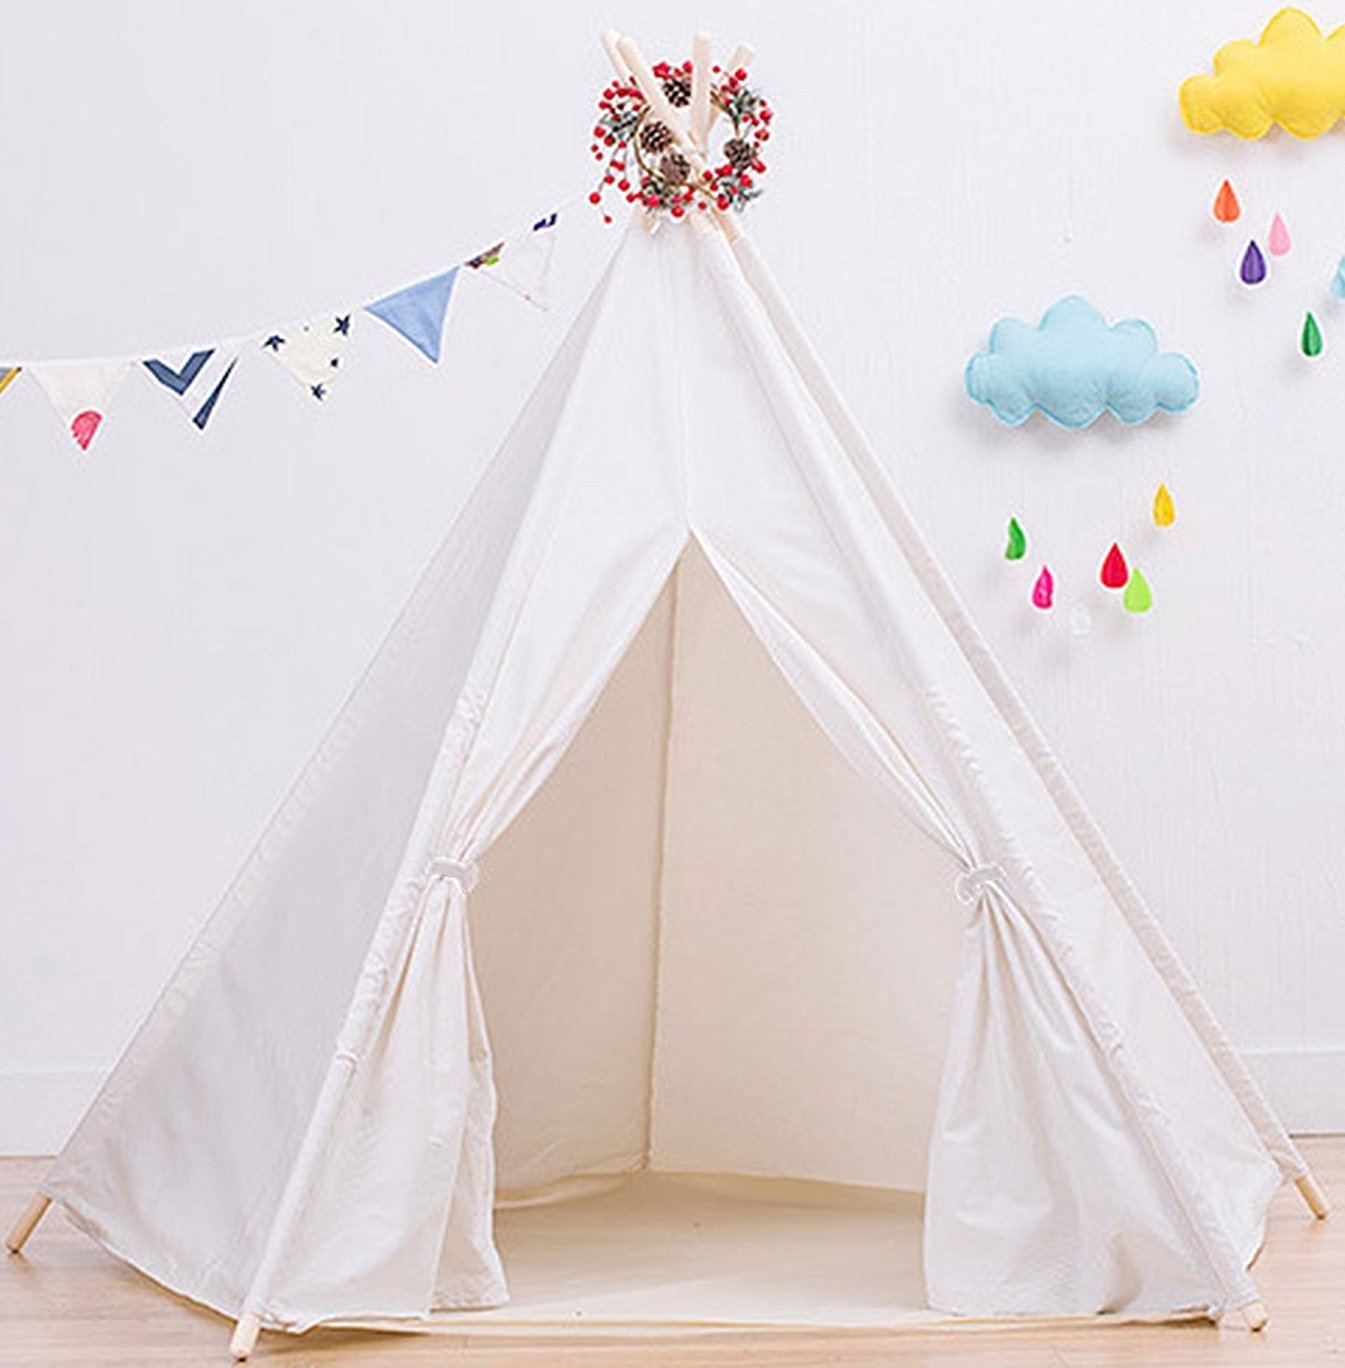 Large Cotton Canvas White Teepee Tent for Kids Tipi Tents Indoor Outdoor | Play Tent Foldable 7 Feet Tall - 5 Poles | Customizable Cotton Tent | Childrens Teepee Tents for Girls and Boys Kids Teepee